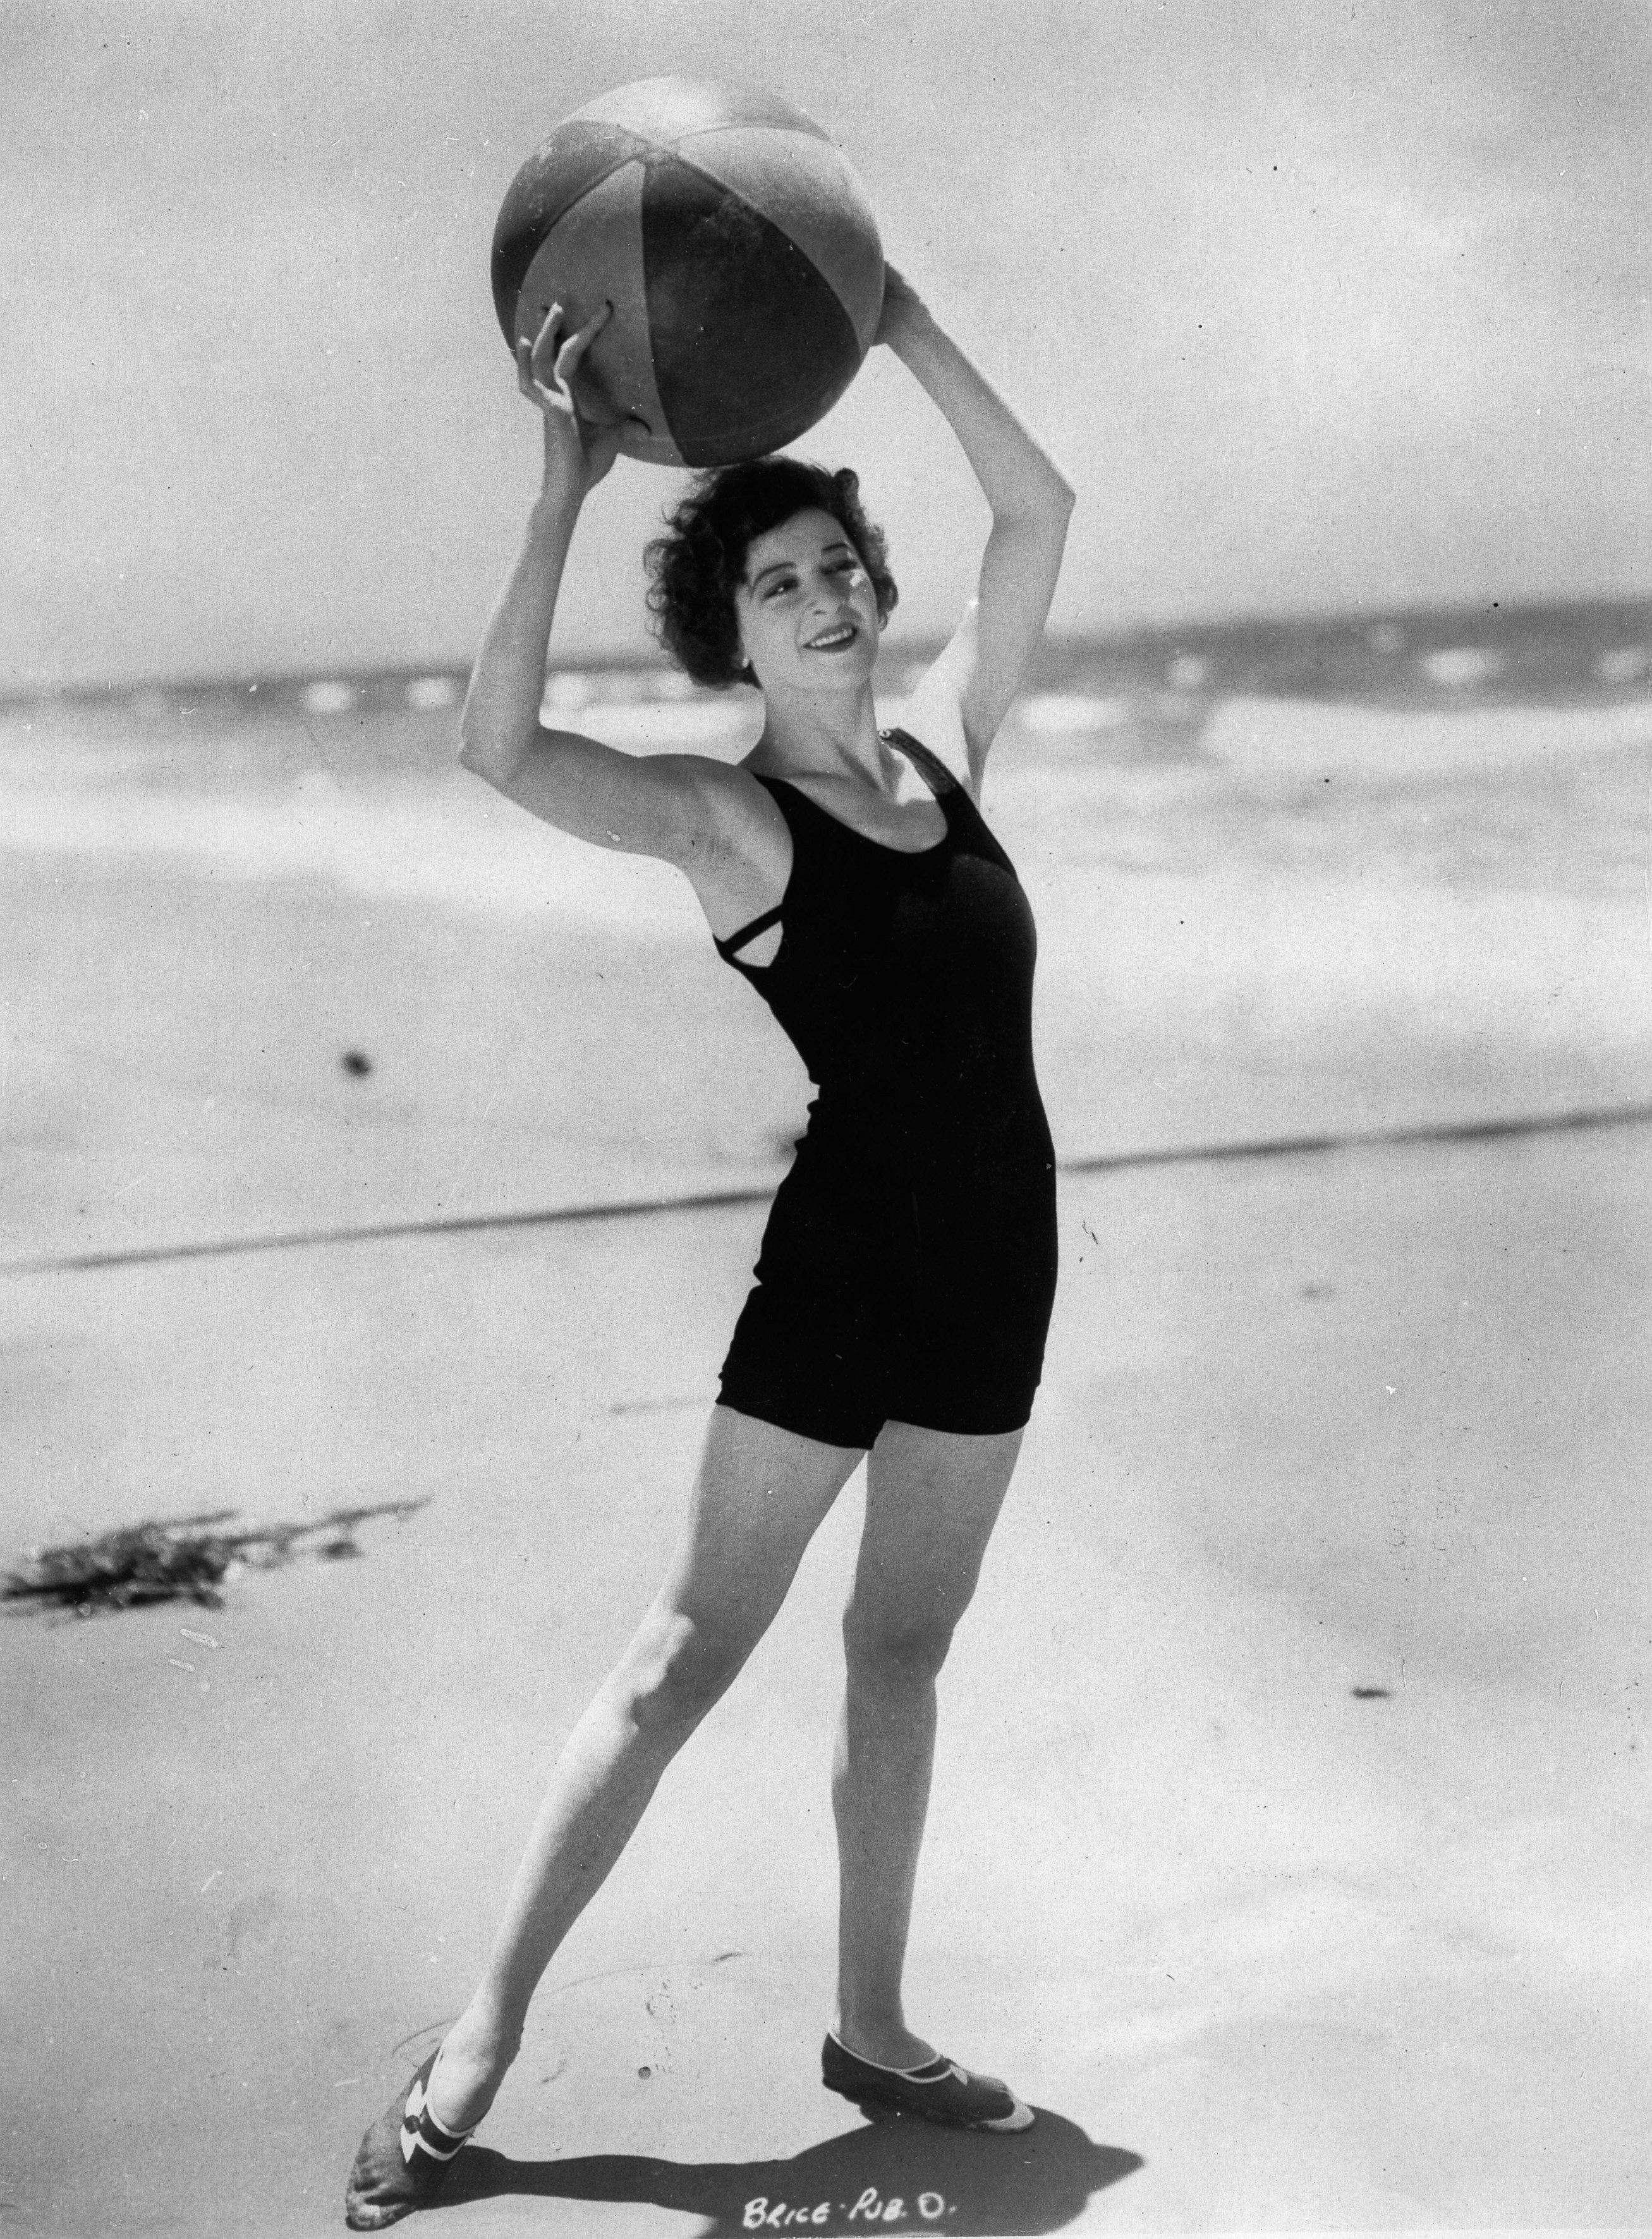 Fanny Brice. US-american comedian/ singer/ theatre and film actress. On a beach in California. About 1925. Photograph. (Photo by Imagno/Getty Images) Fanny Brice. US-amerikanische Komikerin/ Entertainerin/ Sängerin, Theater- und Filmschauspielerin. An ein